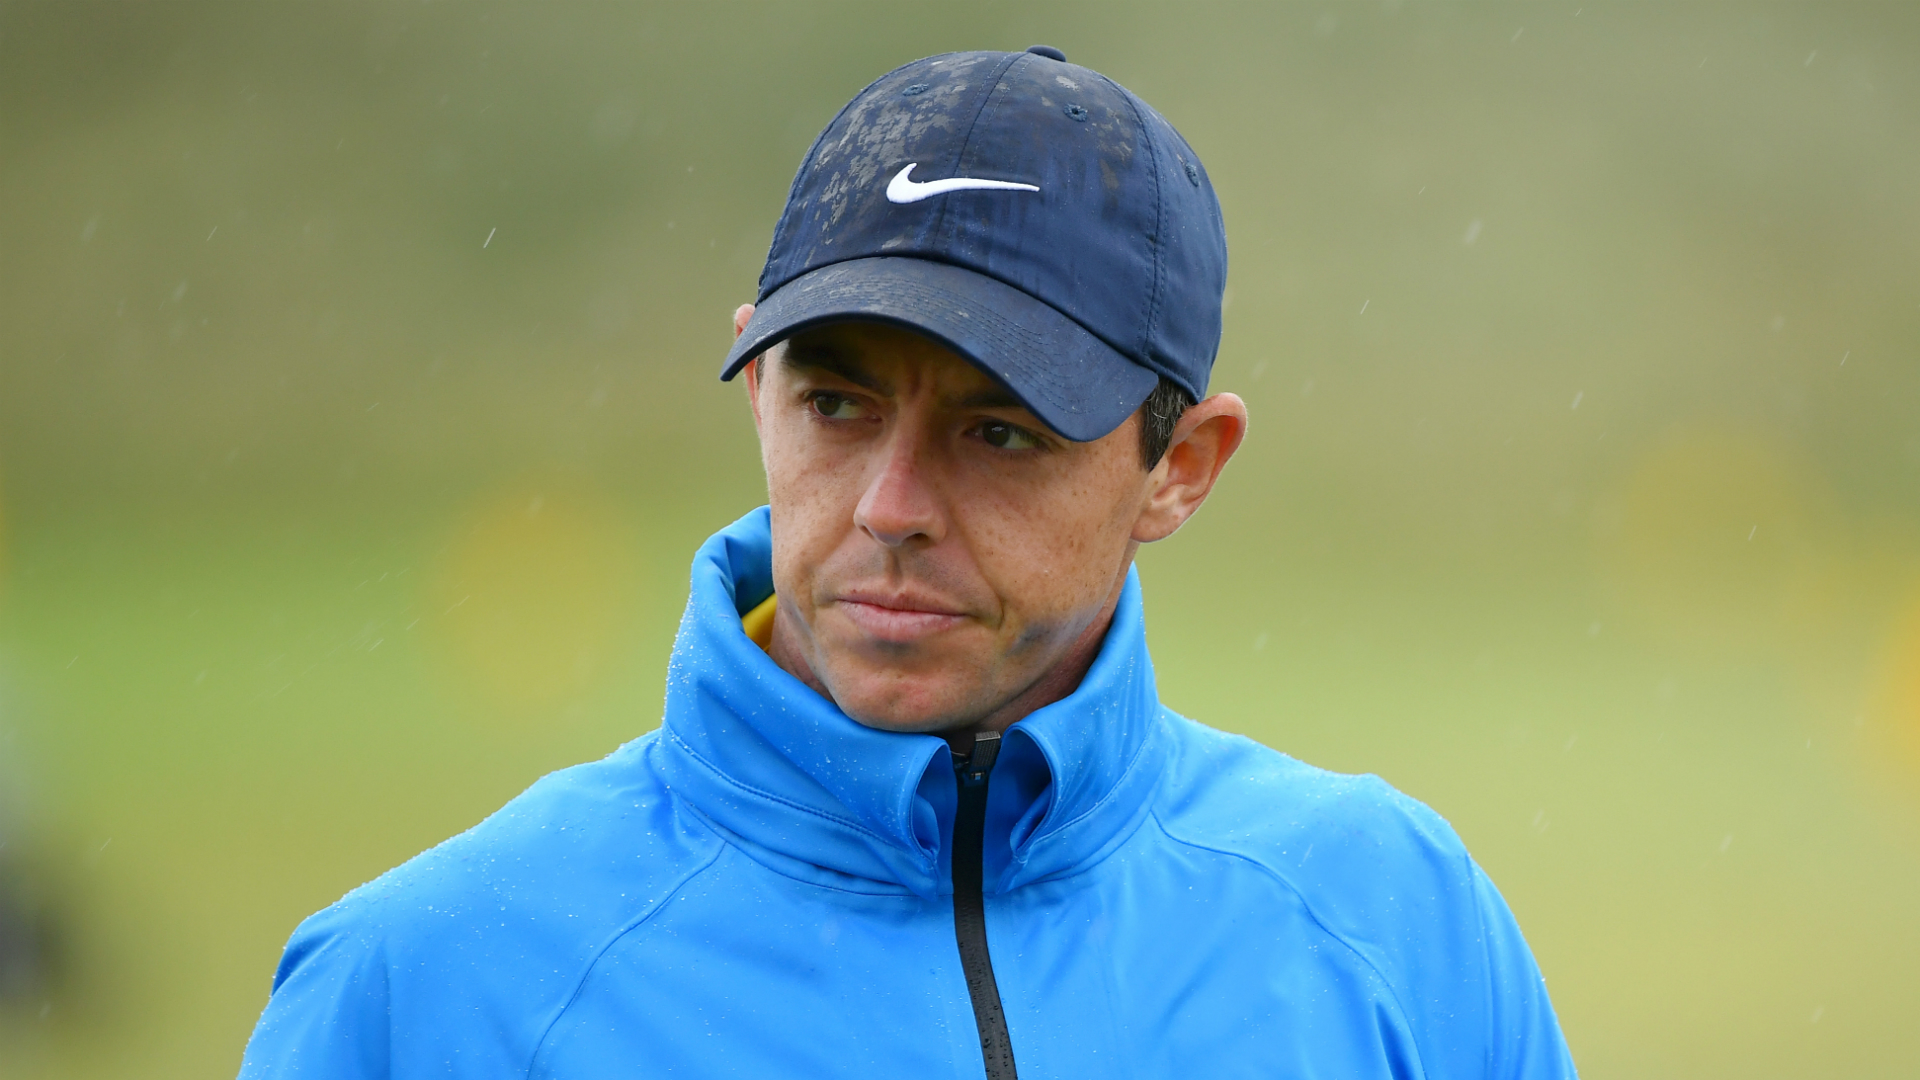 Player expects McIlroy to learn from Open disappointment